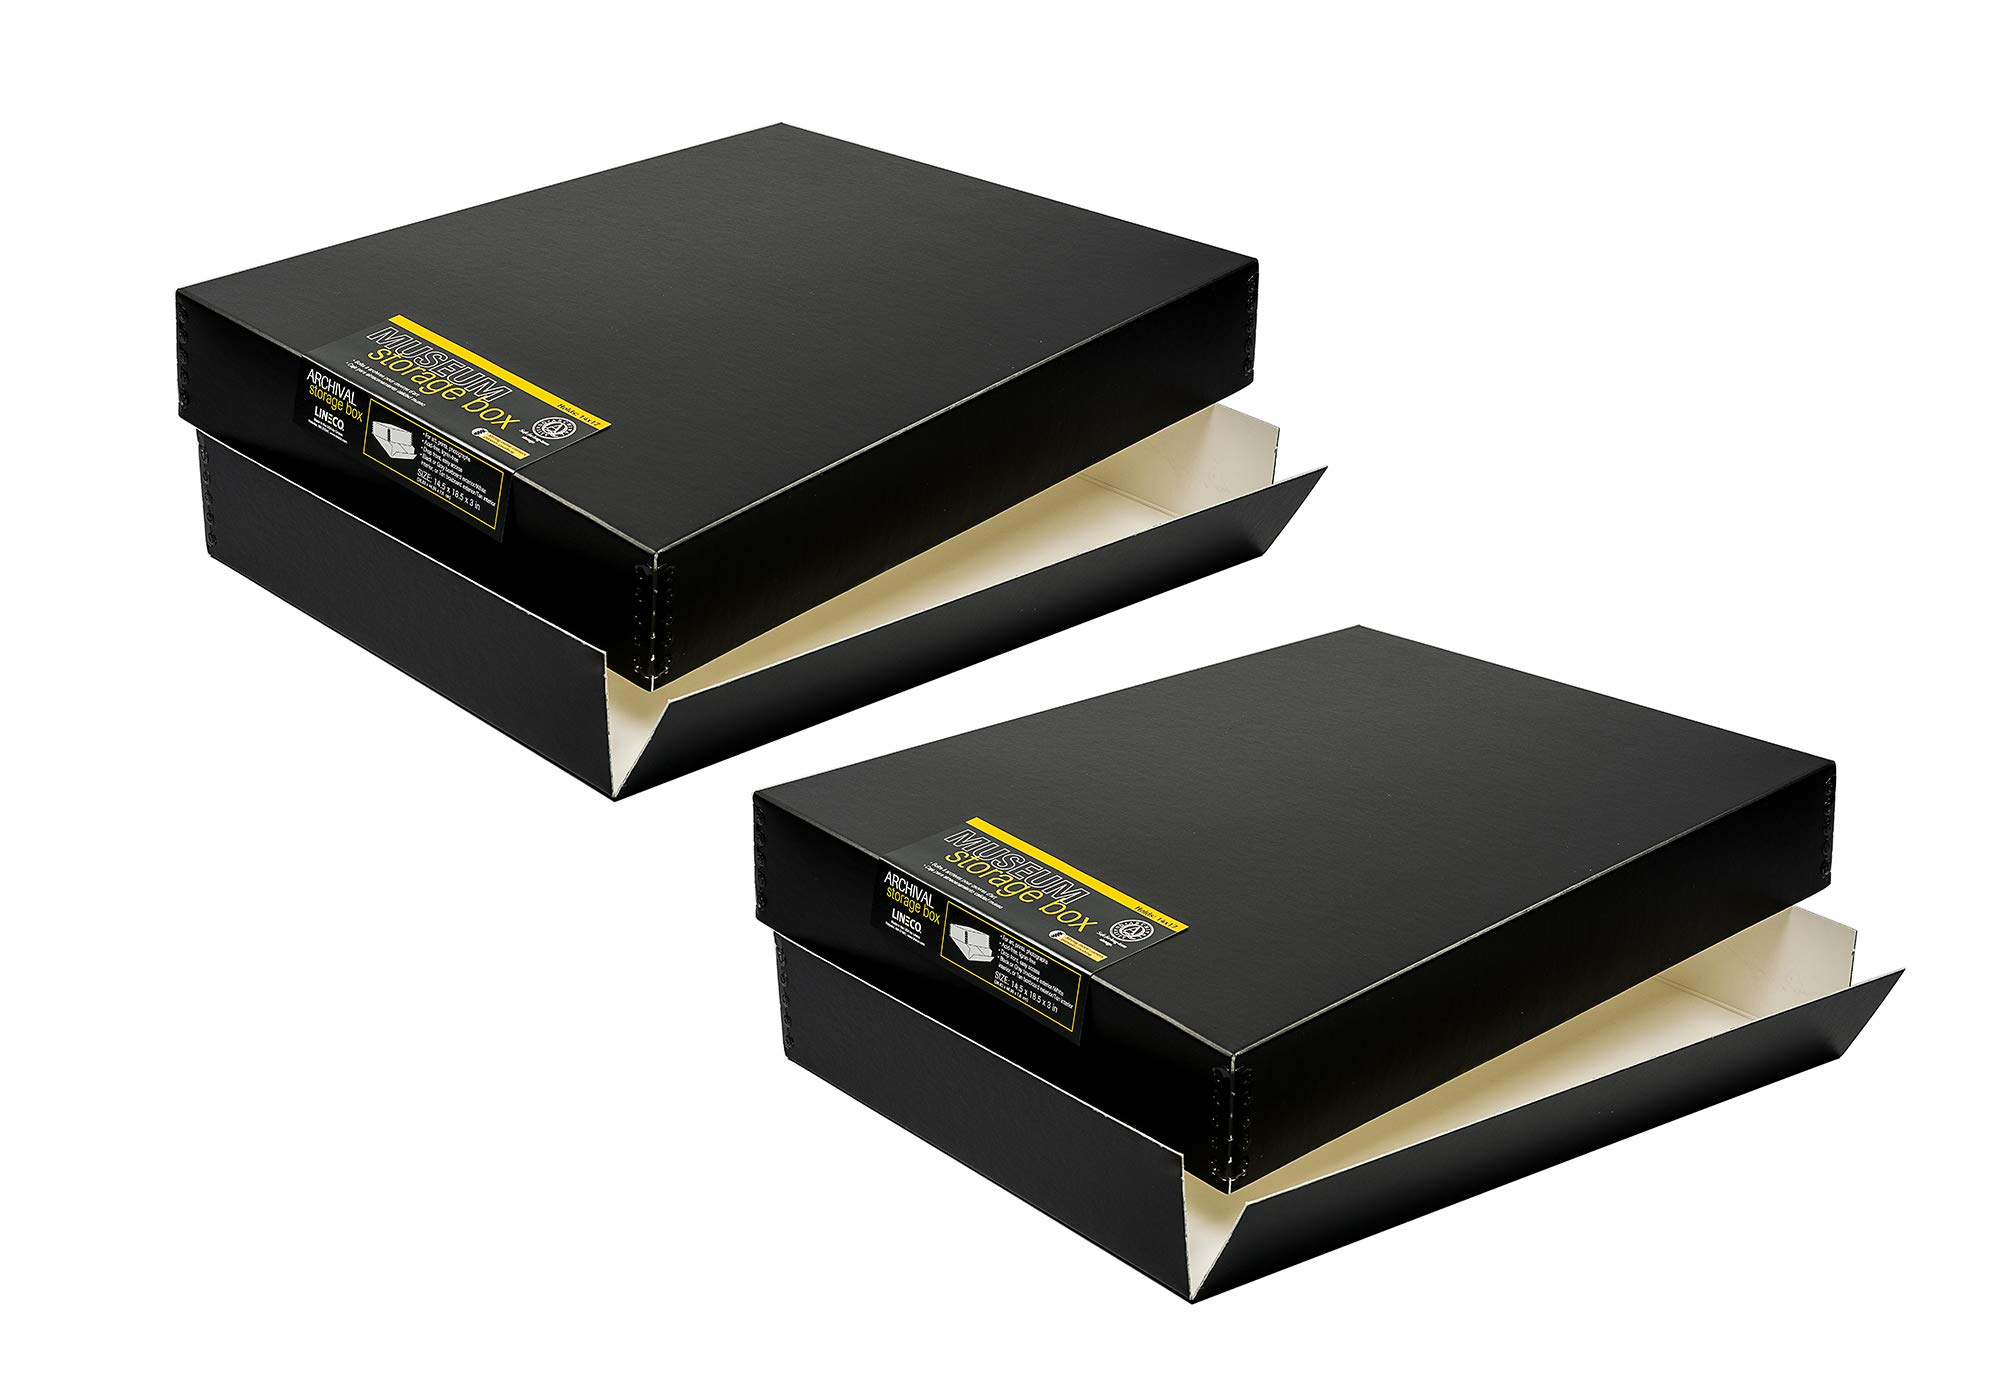 Lineco, Black Archival Box - Pack of 2 - for 14x17 Inch Documents, Photos, Artworks - Drop Front Design - Metal Corner Edges - Acid Free - Lignin Free - Museum Boxes - Easy Storage and Retrieval